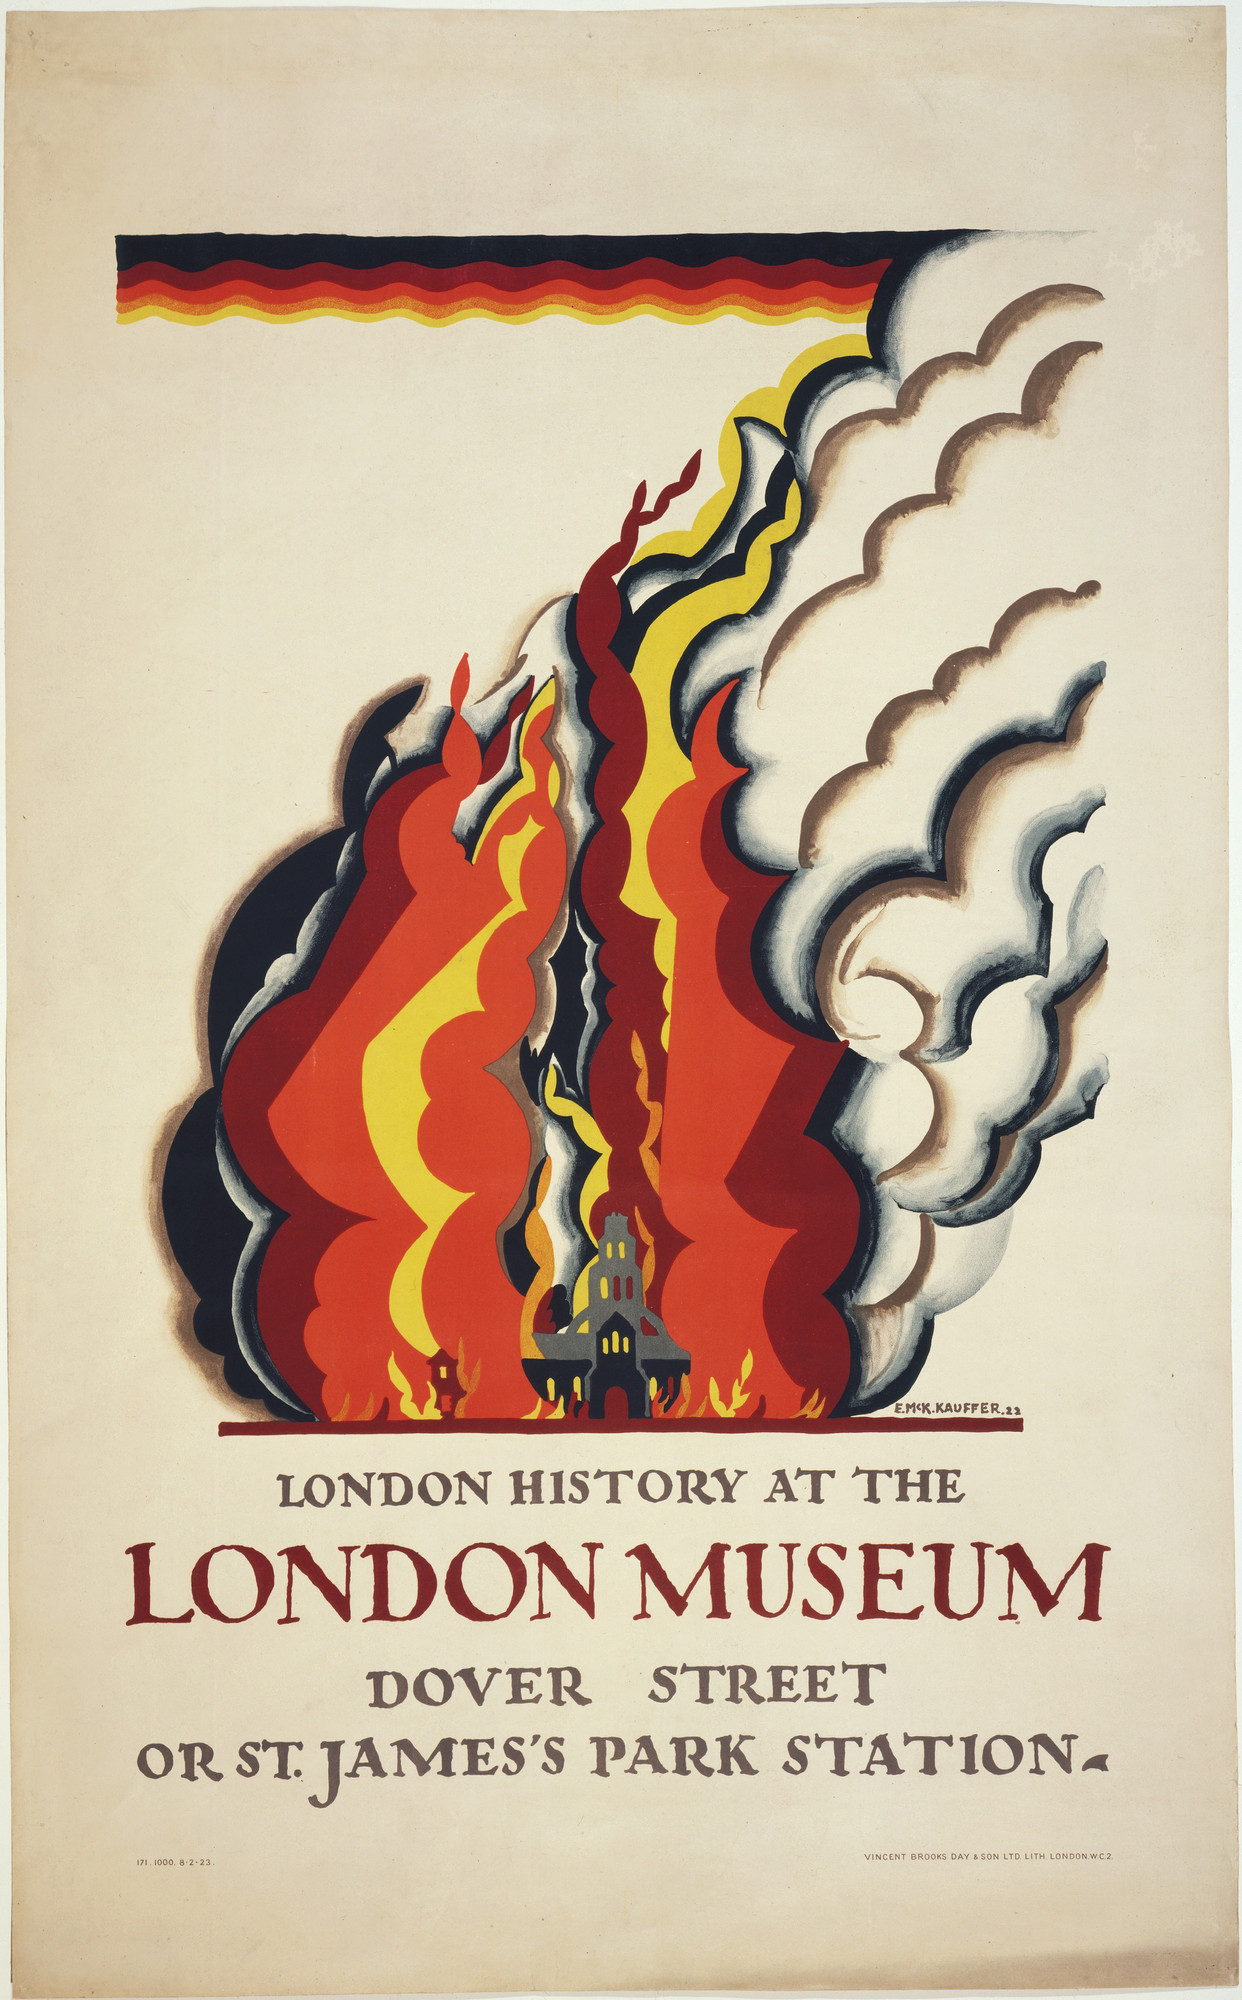 E. McKnight Kauffer. London History at the London Museum. 1922